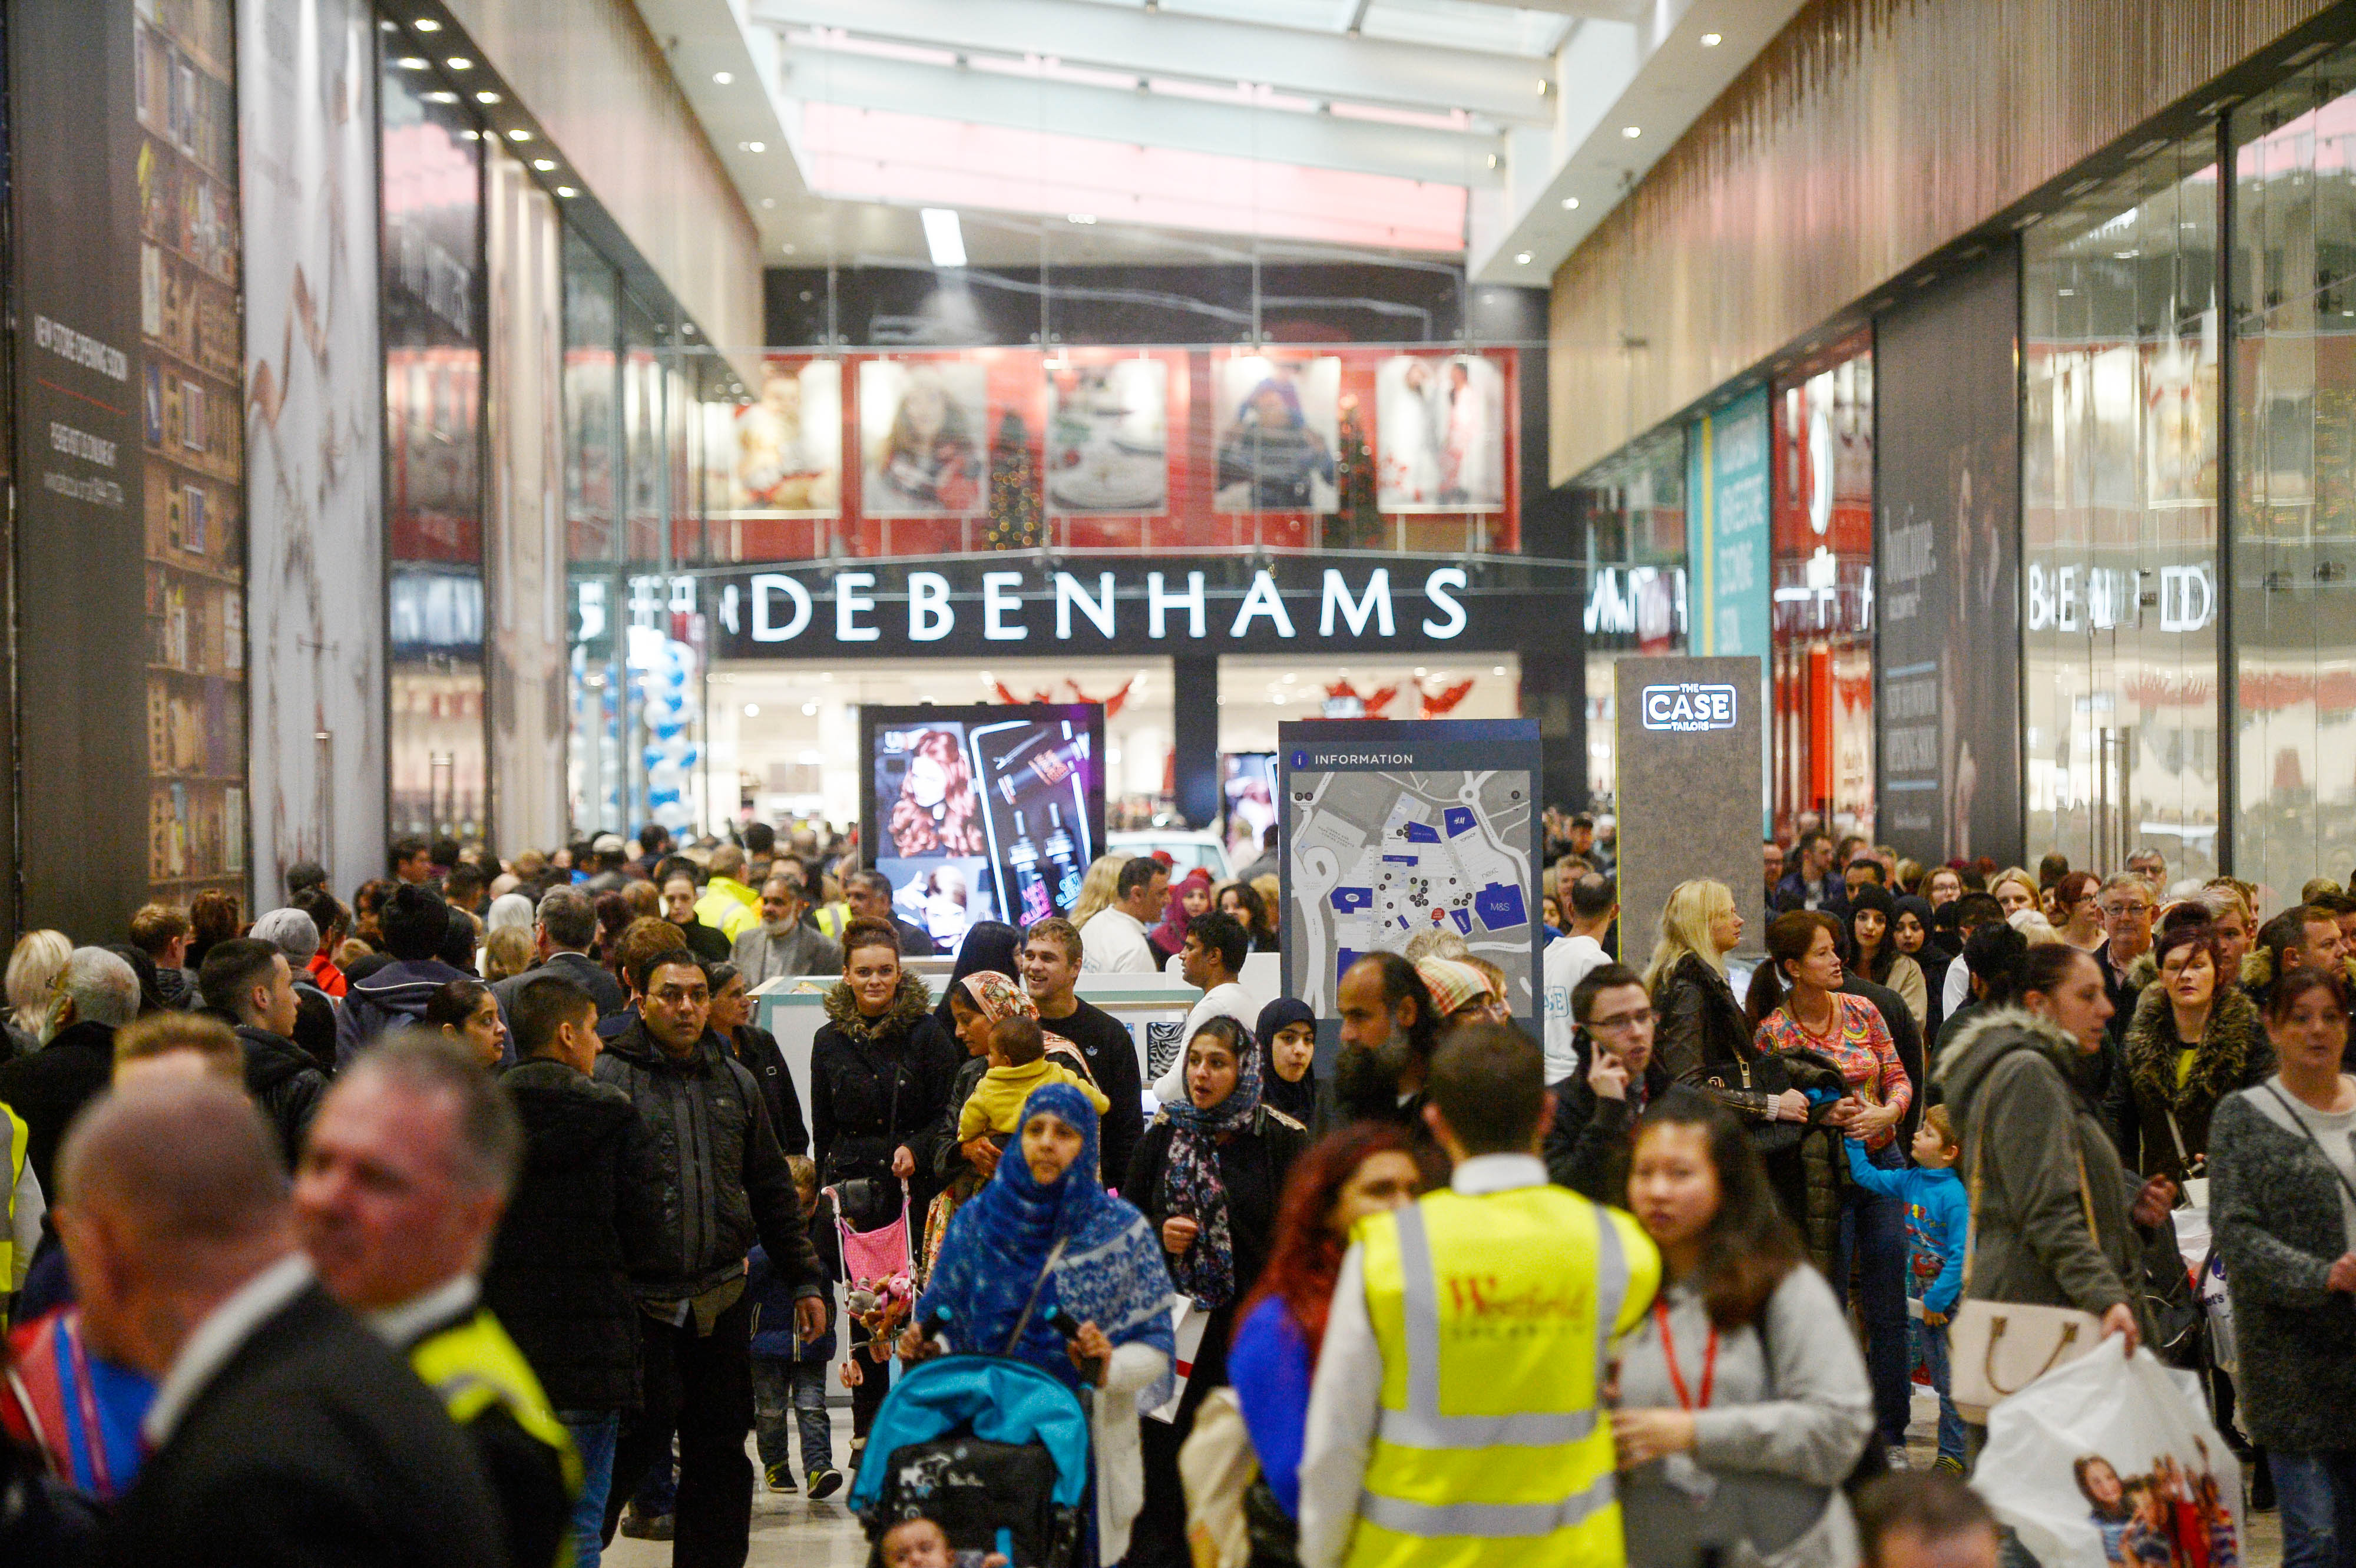 Opening Of $419 million, 550,000 Square-Foot Shopping Complex The Broadway